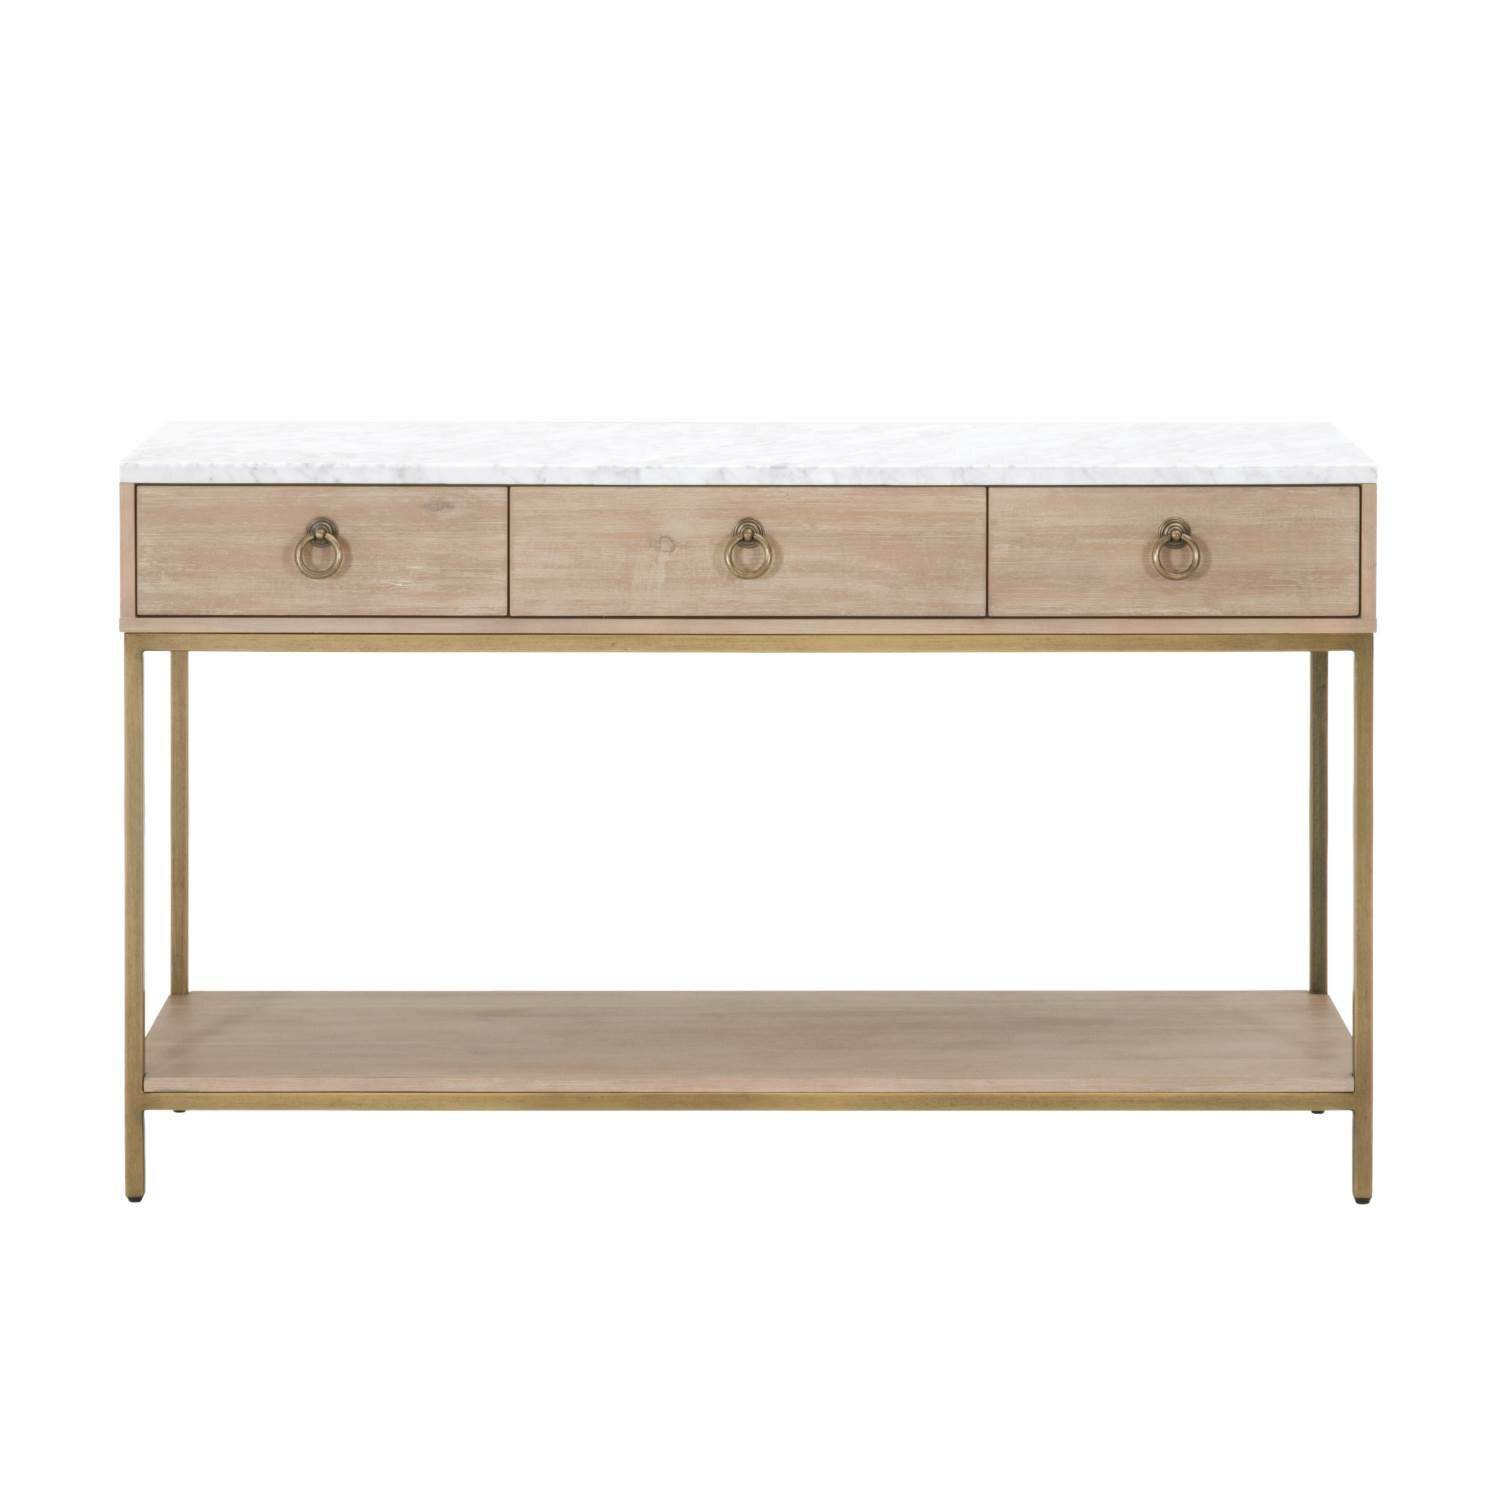 Everly Quinn Pottsville 3 Drawers And 1 Open Shelf Marble Top Entry Console  Table | Wayfair